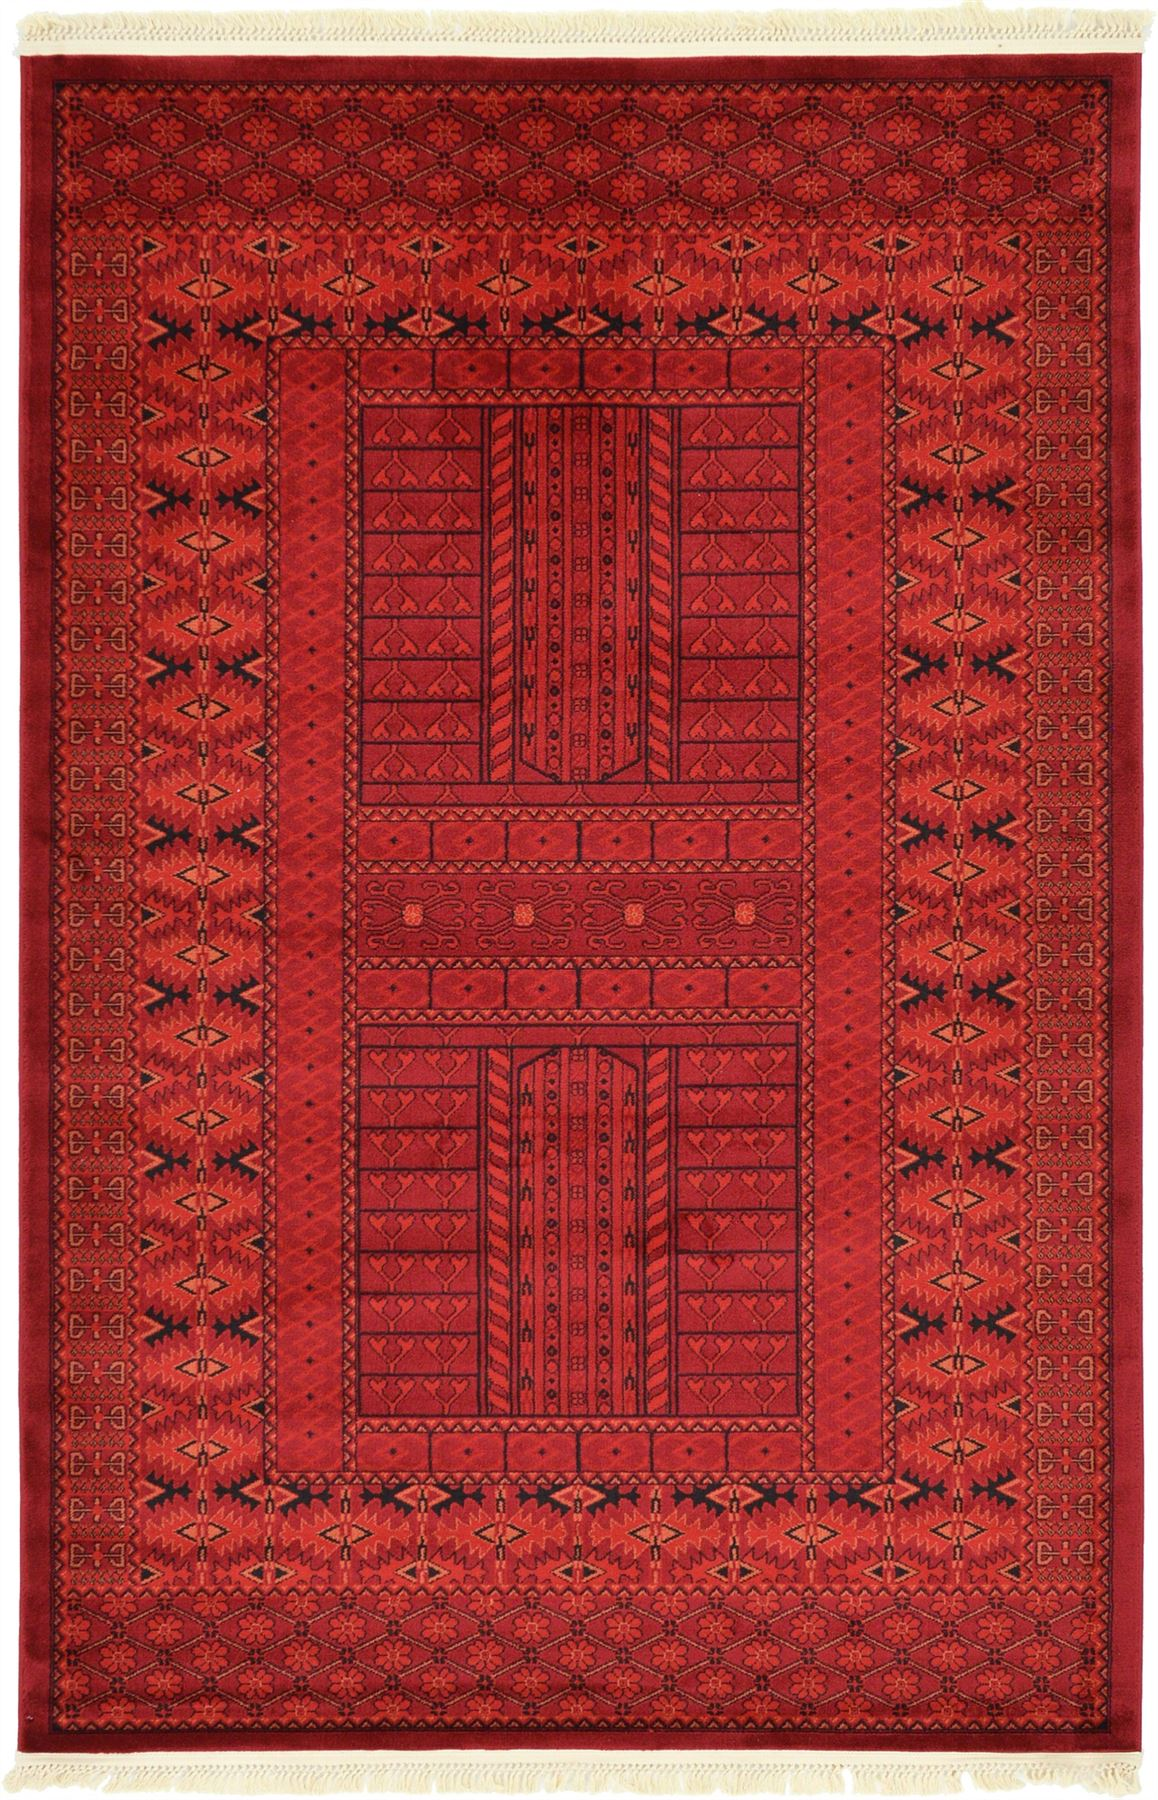 red rug persian style rugs traditional carpet in 7 sizes ebay